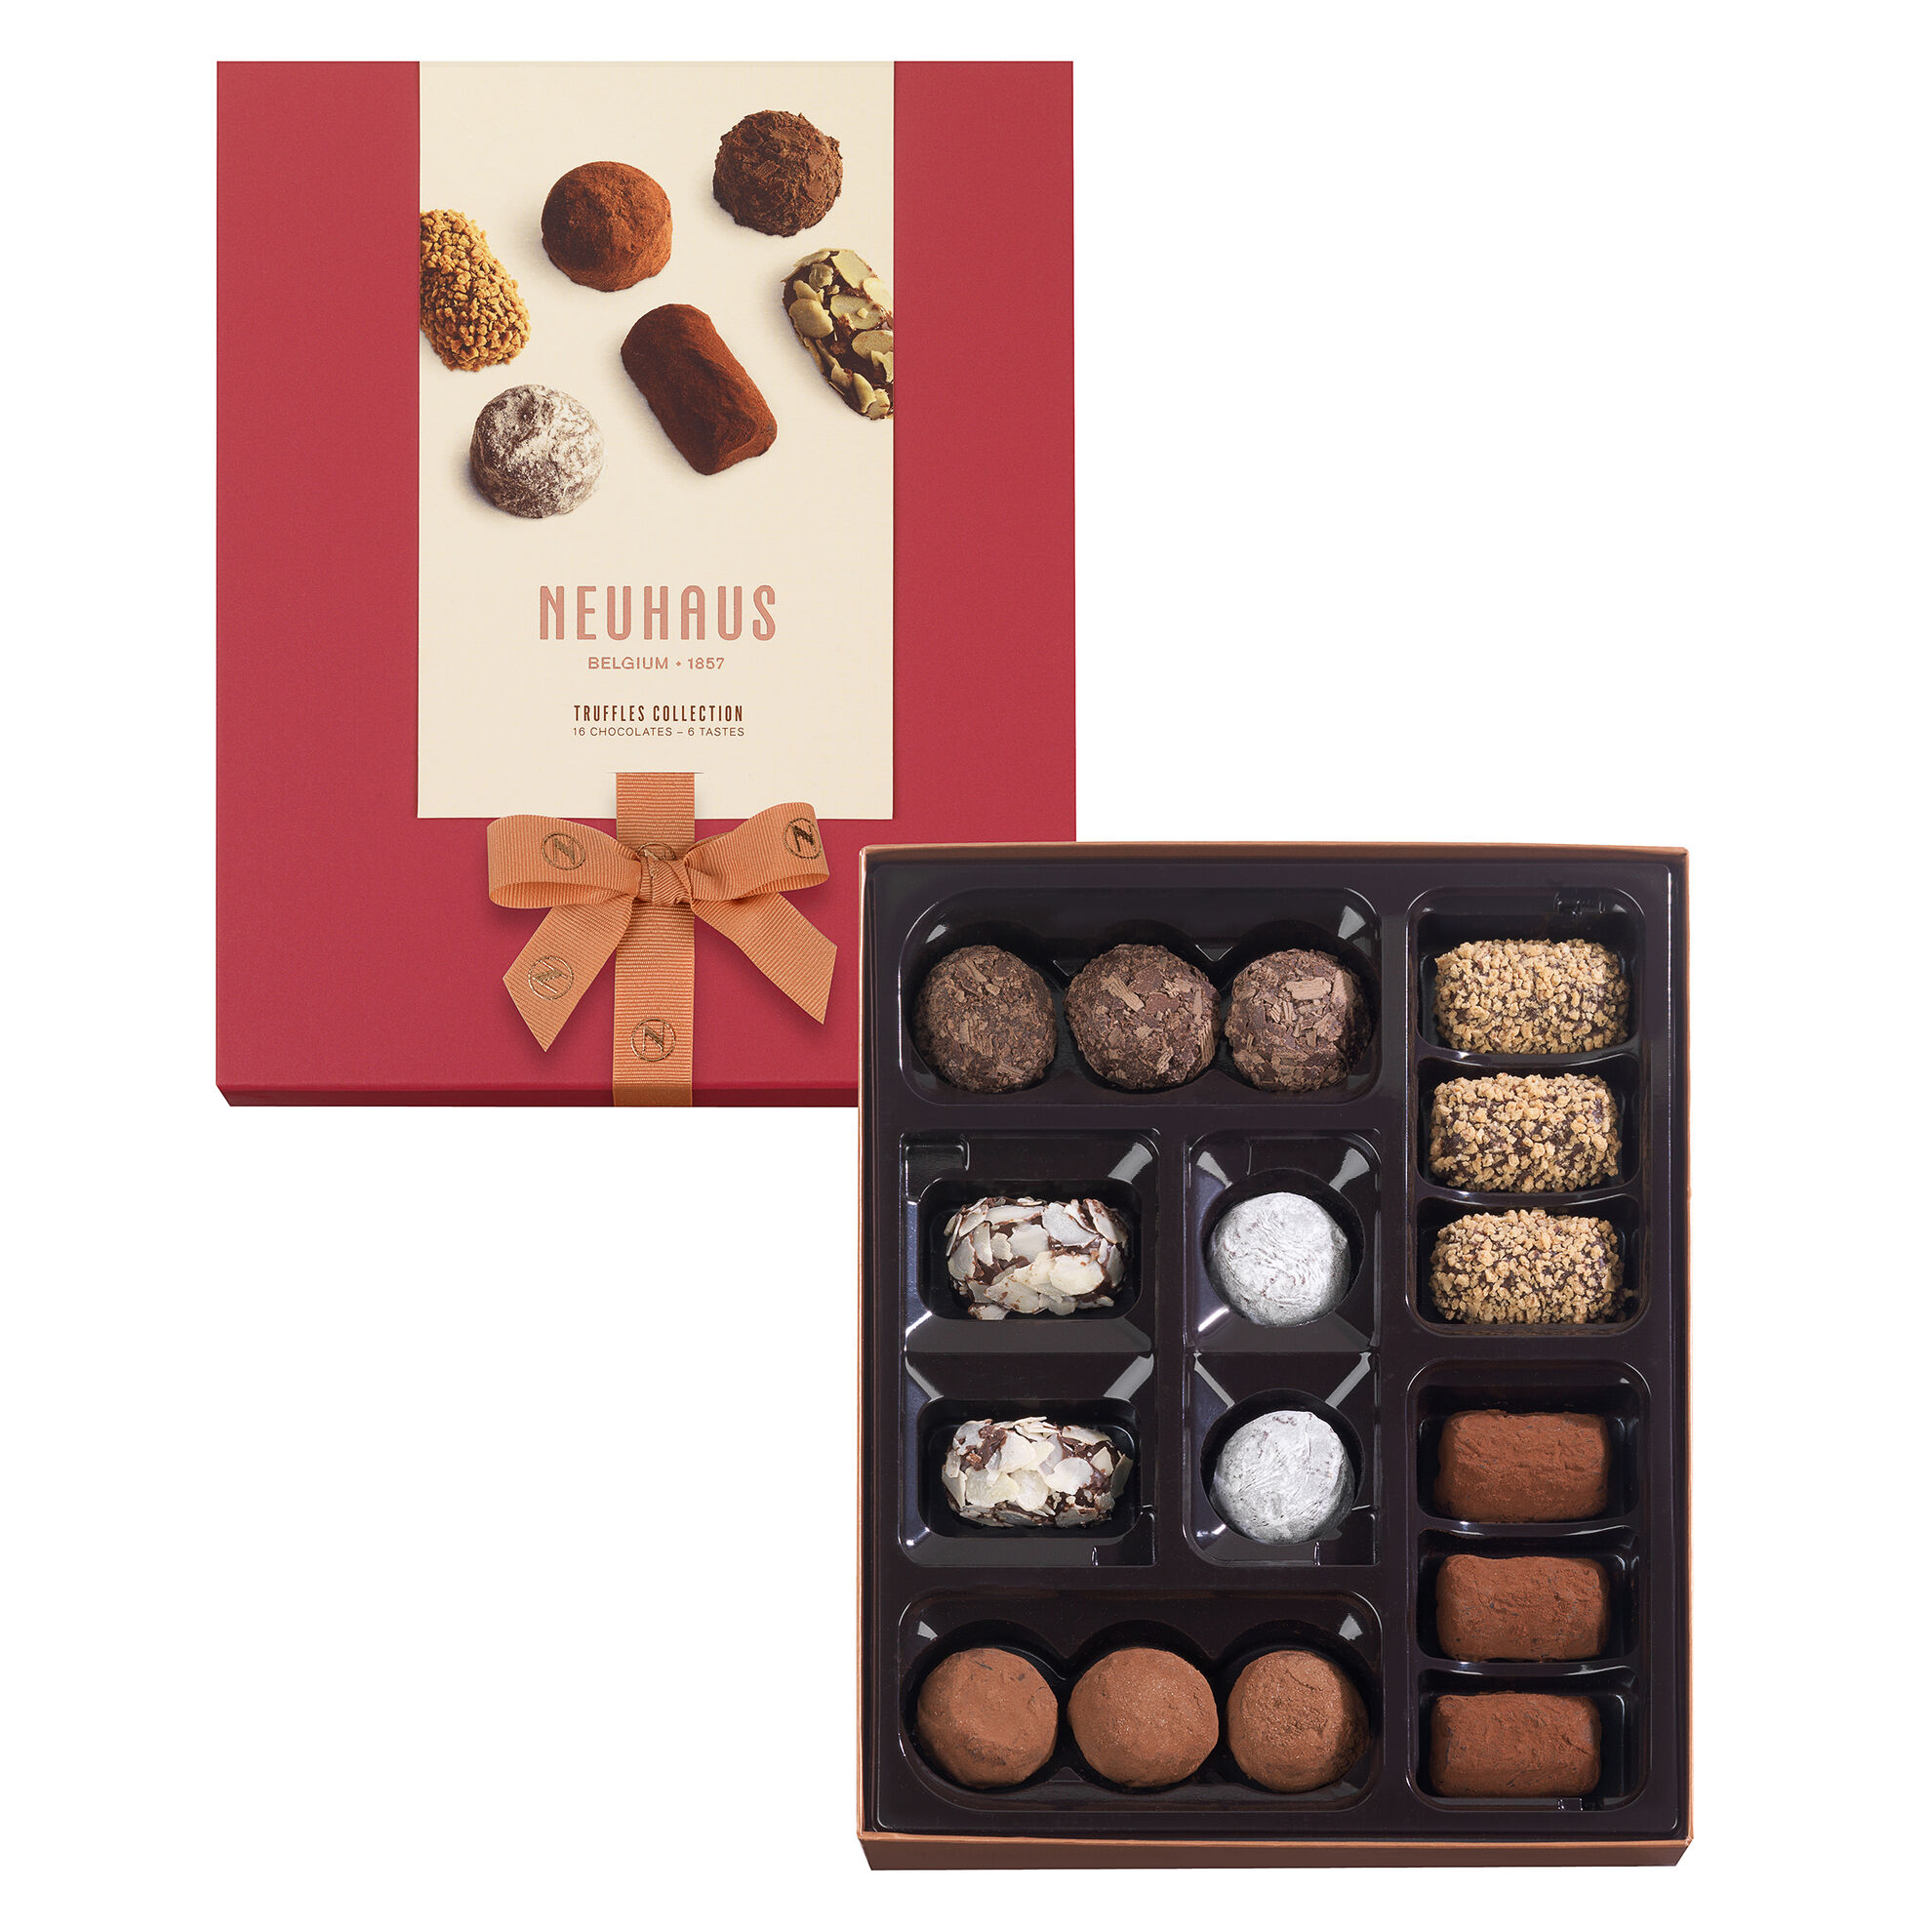 Neuhaus Collection Truffles Assortment 16 pcs image number 01